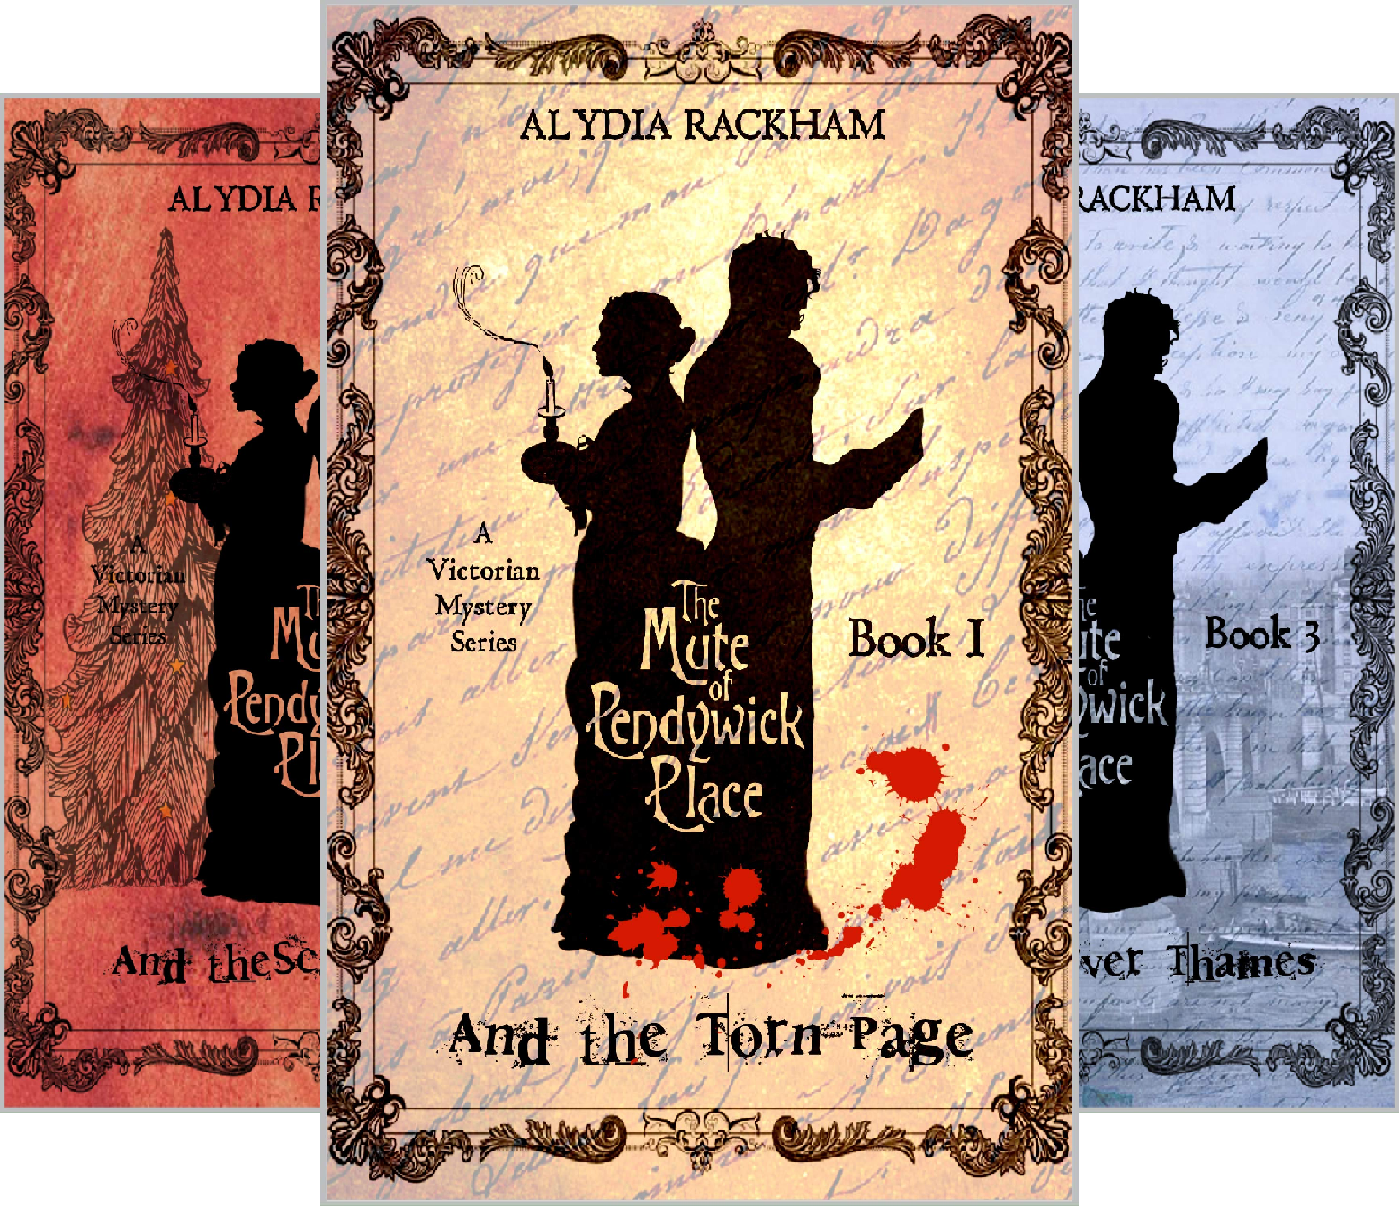 The Mute of Pendywick Place (5 Book Series)